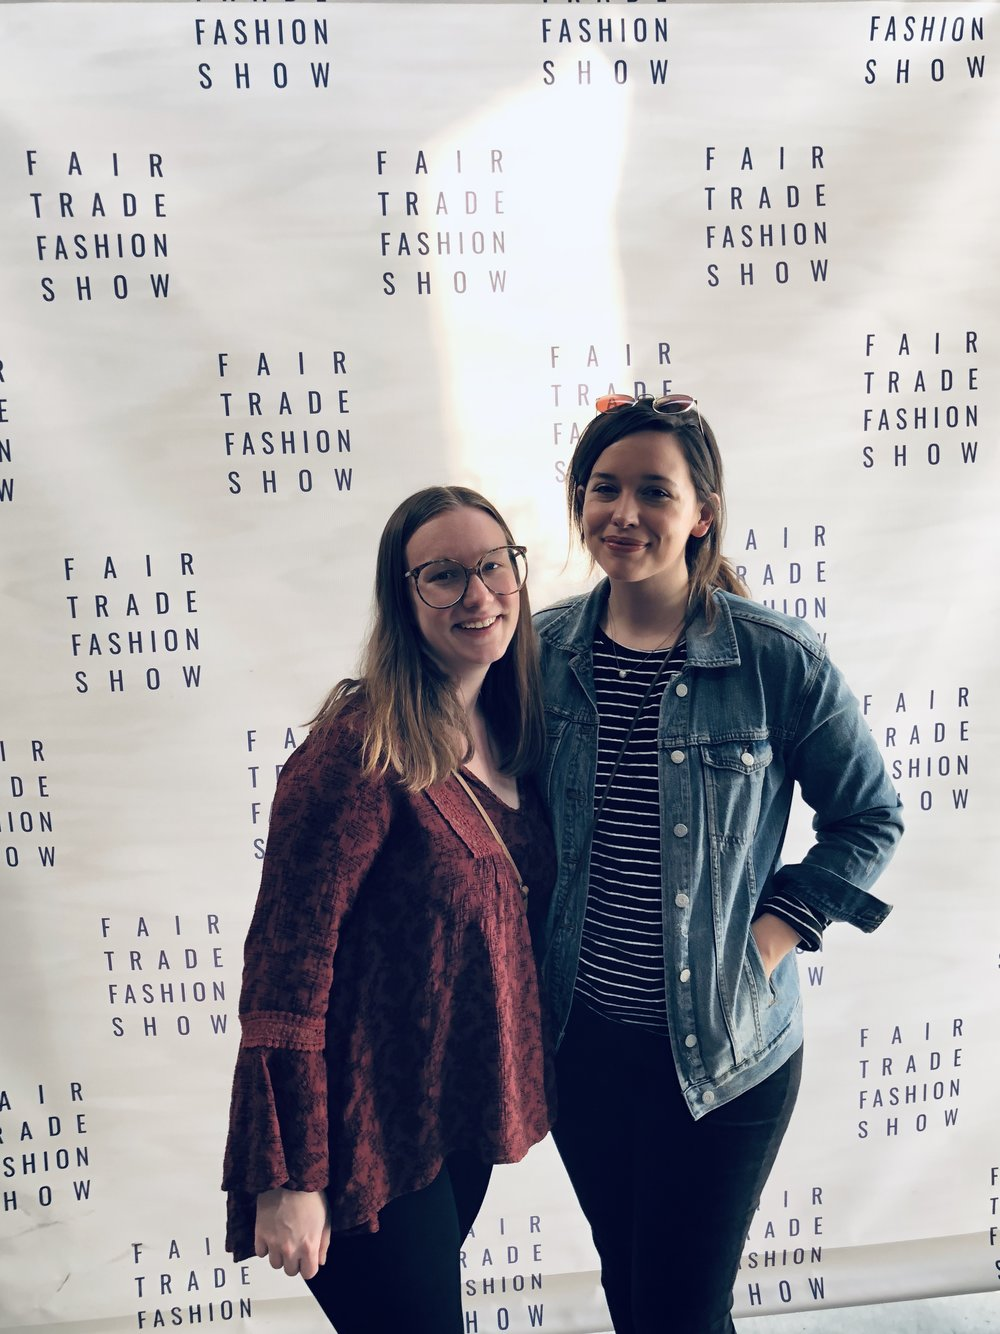 Ethical Fashion Blogger at the Fair Trade Fashion Show